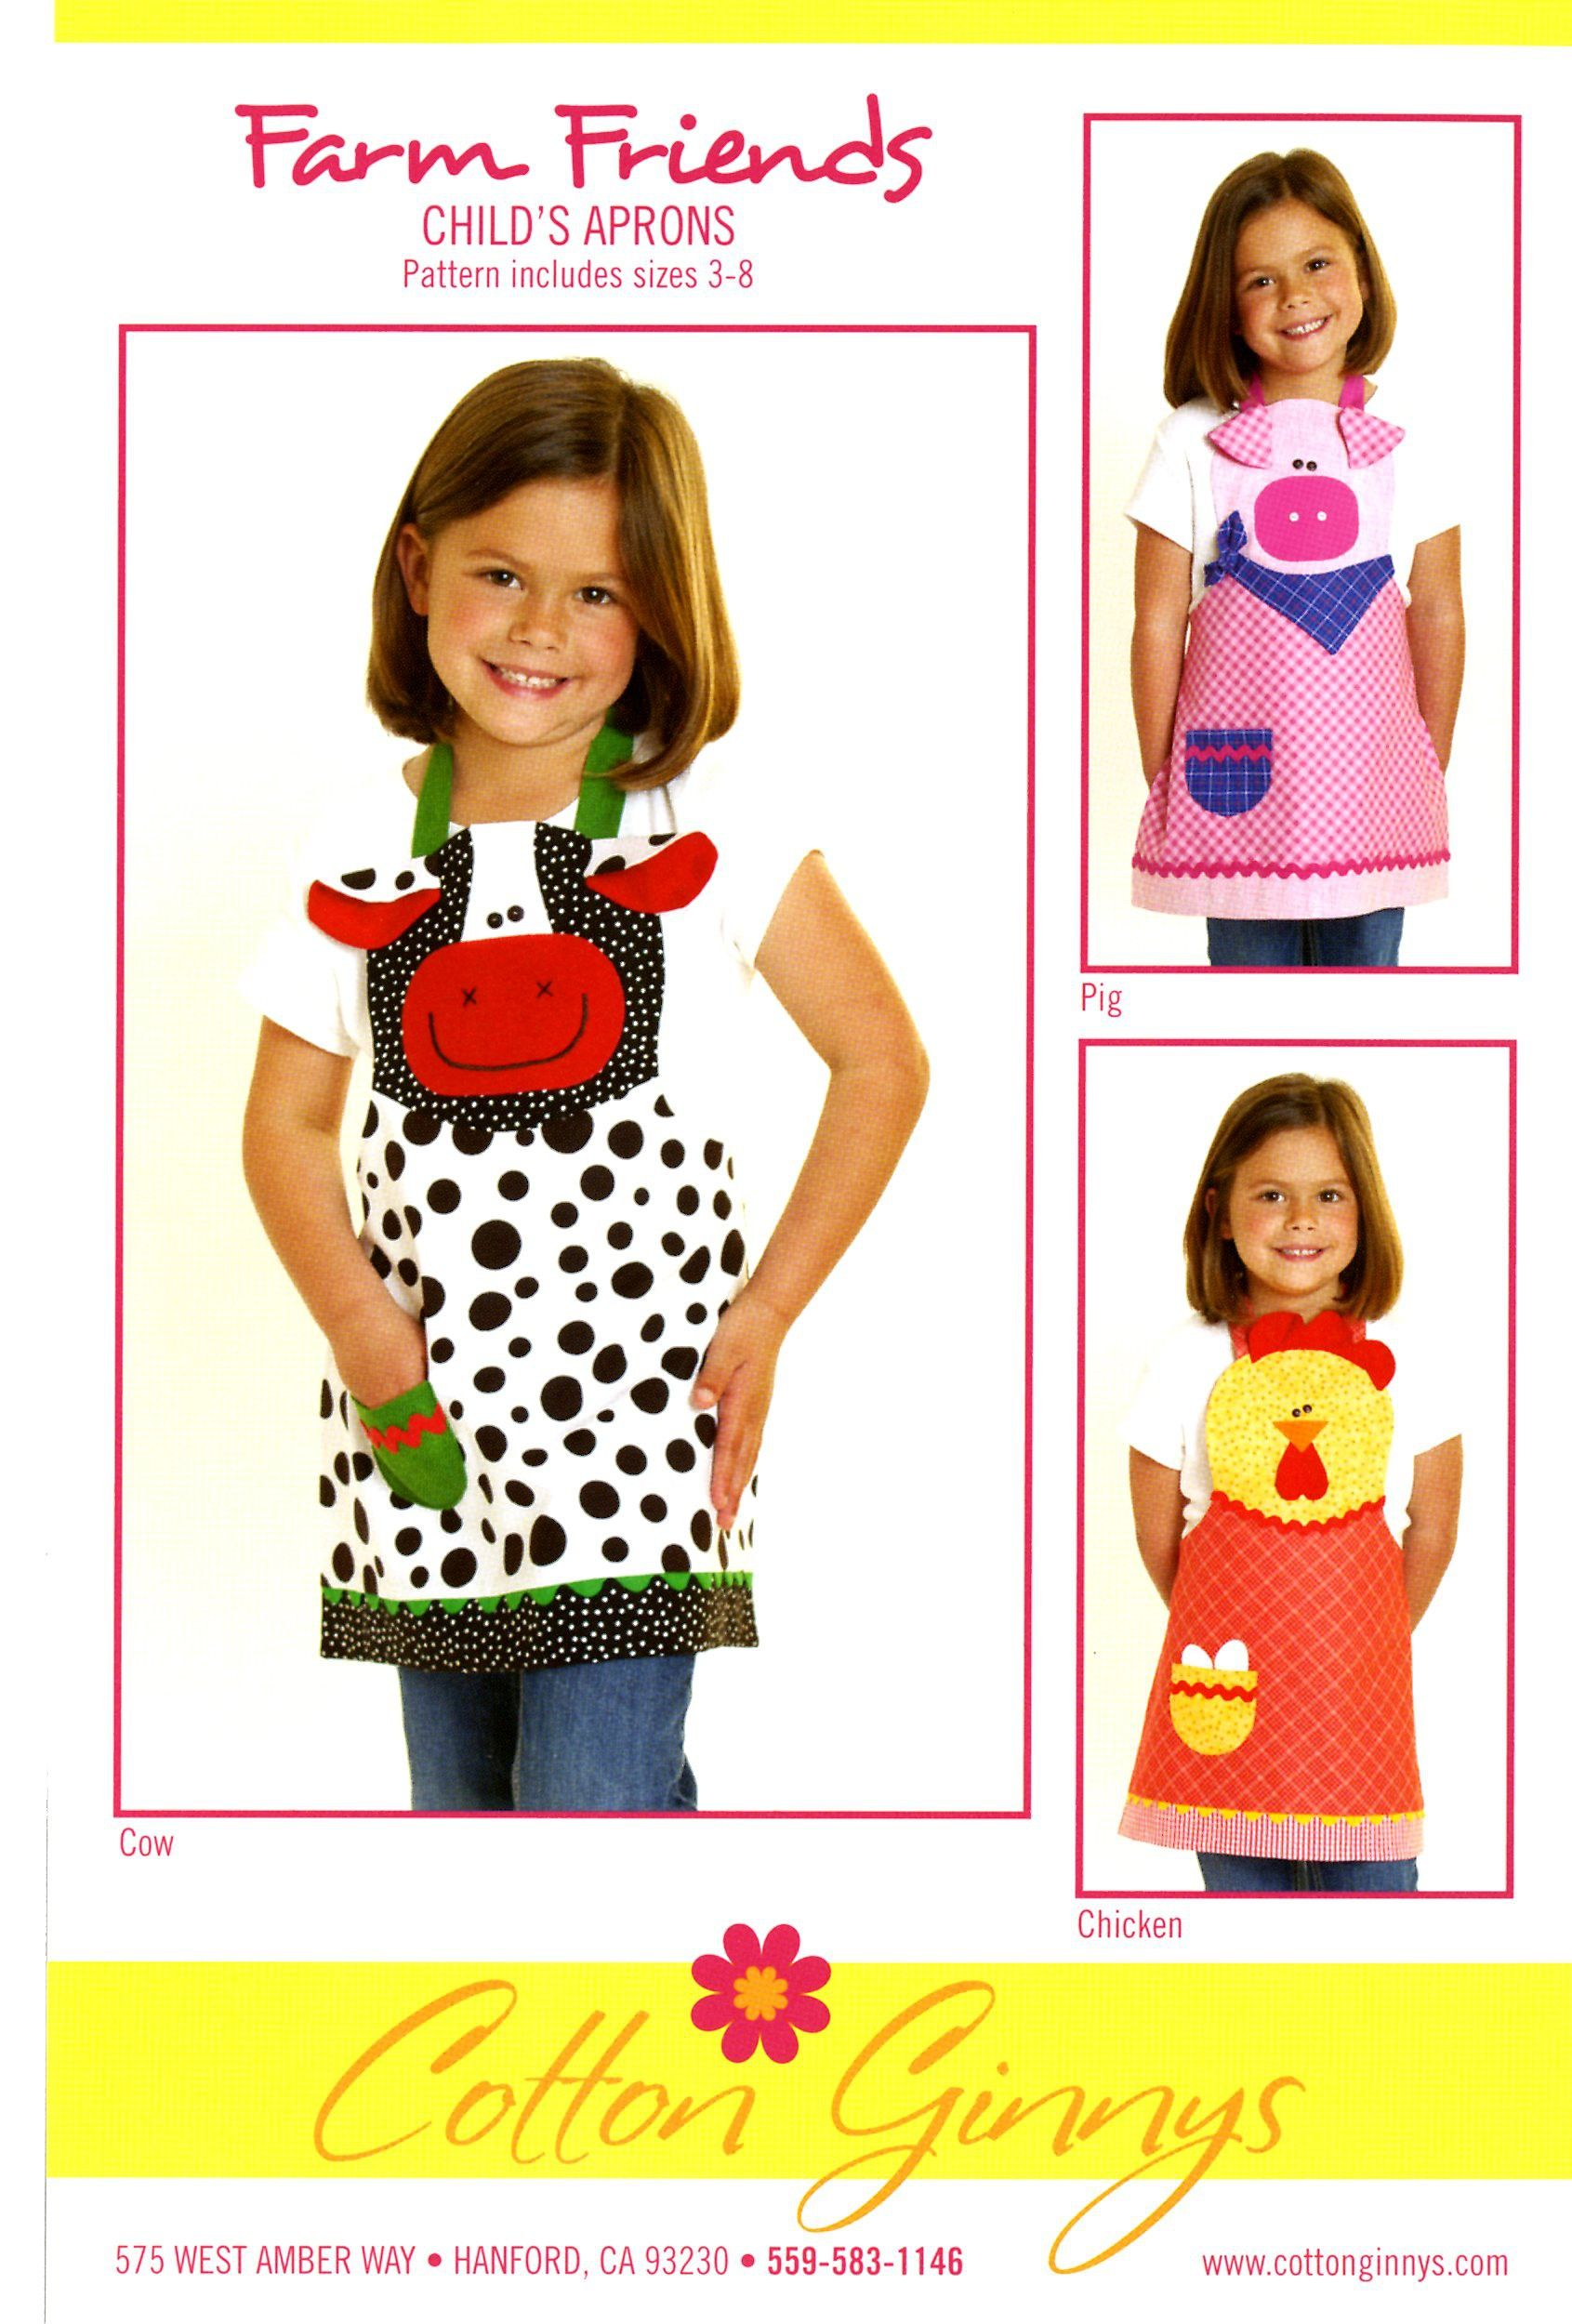 Farm Friends Child's Apron Cow, Pig & Chicken By Rose, Cynthia  - Kids love aprons! Makes helping mom or play time a lot more fun. They are easy and enjoyable to make and exciting to give as gifts. Pattern includes the cow, pig and chicken in sizes 3 thru 8.